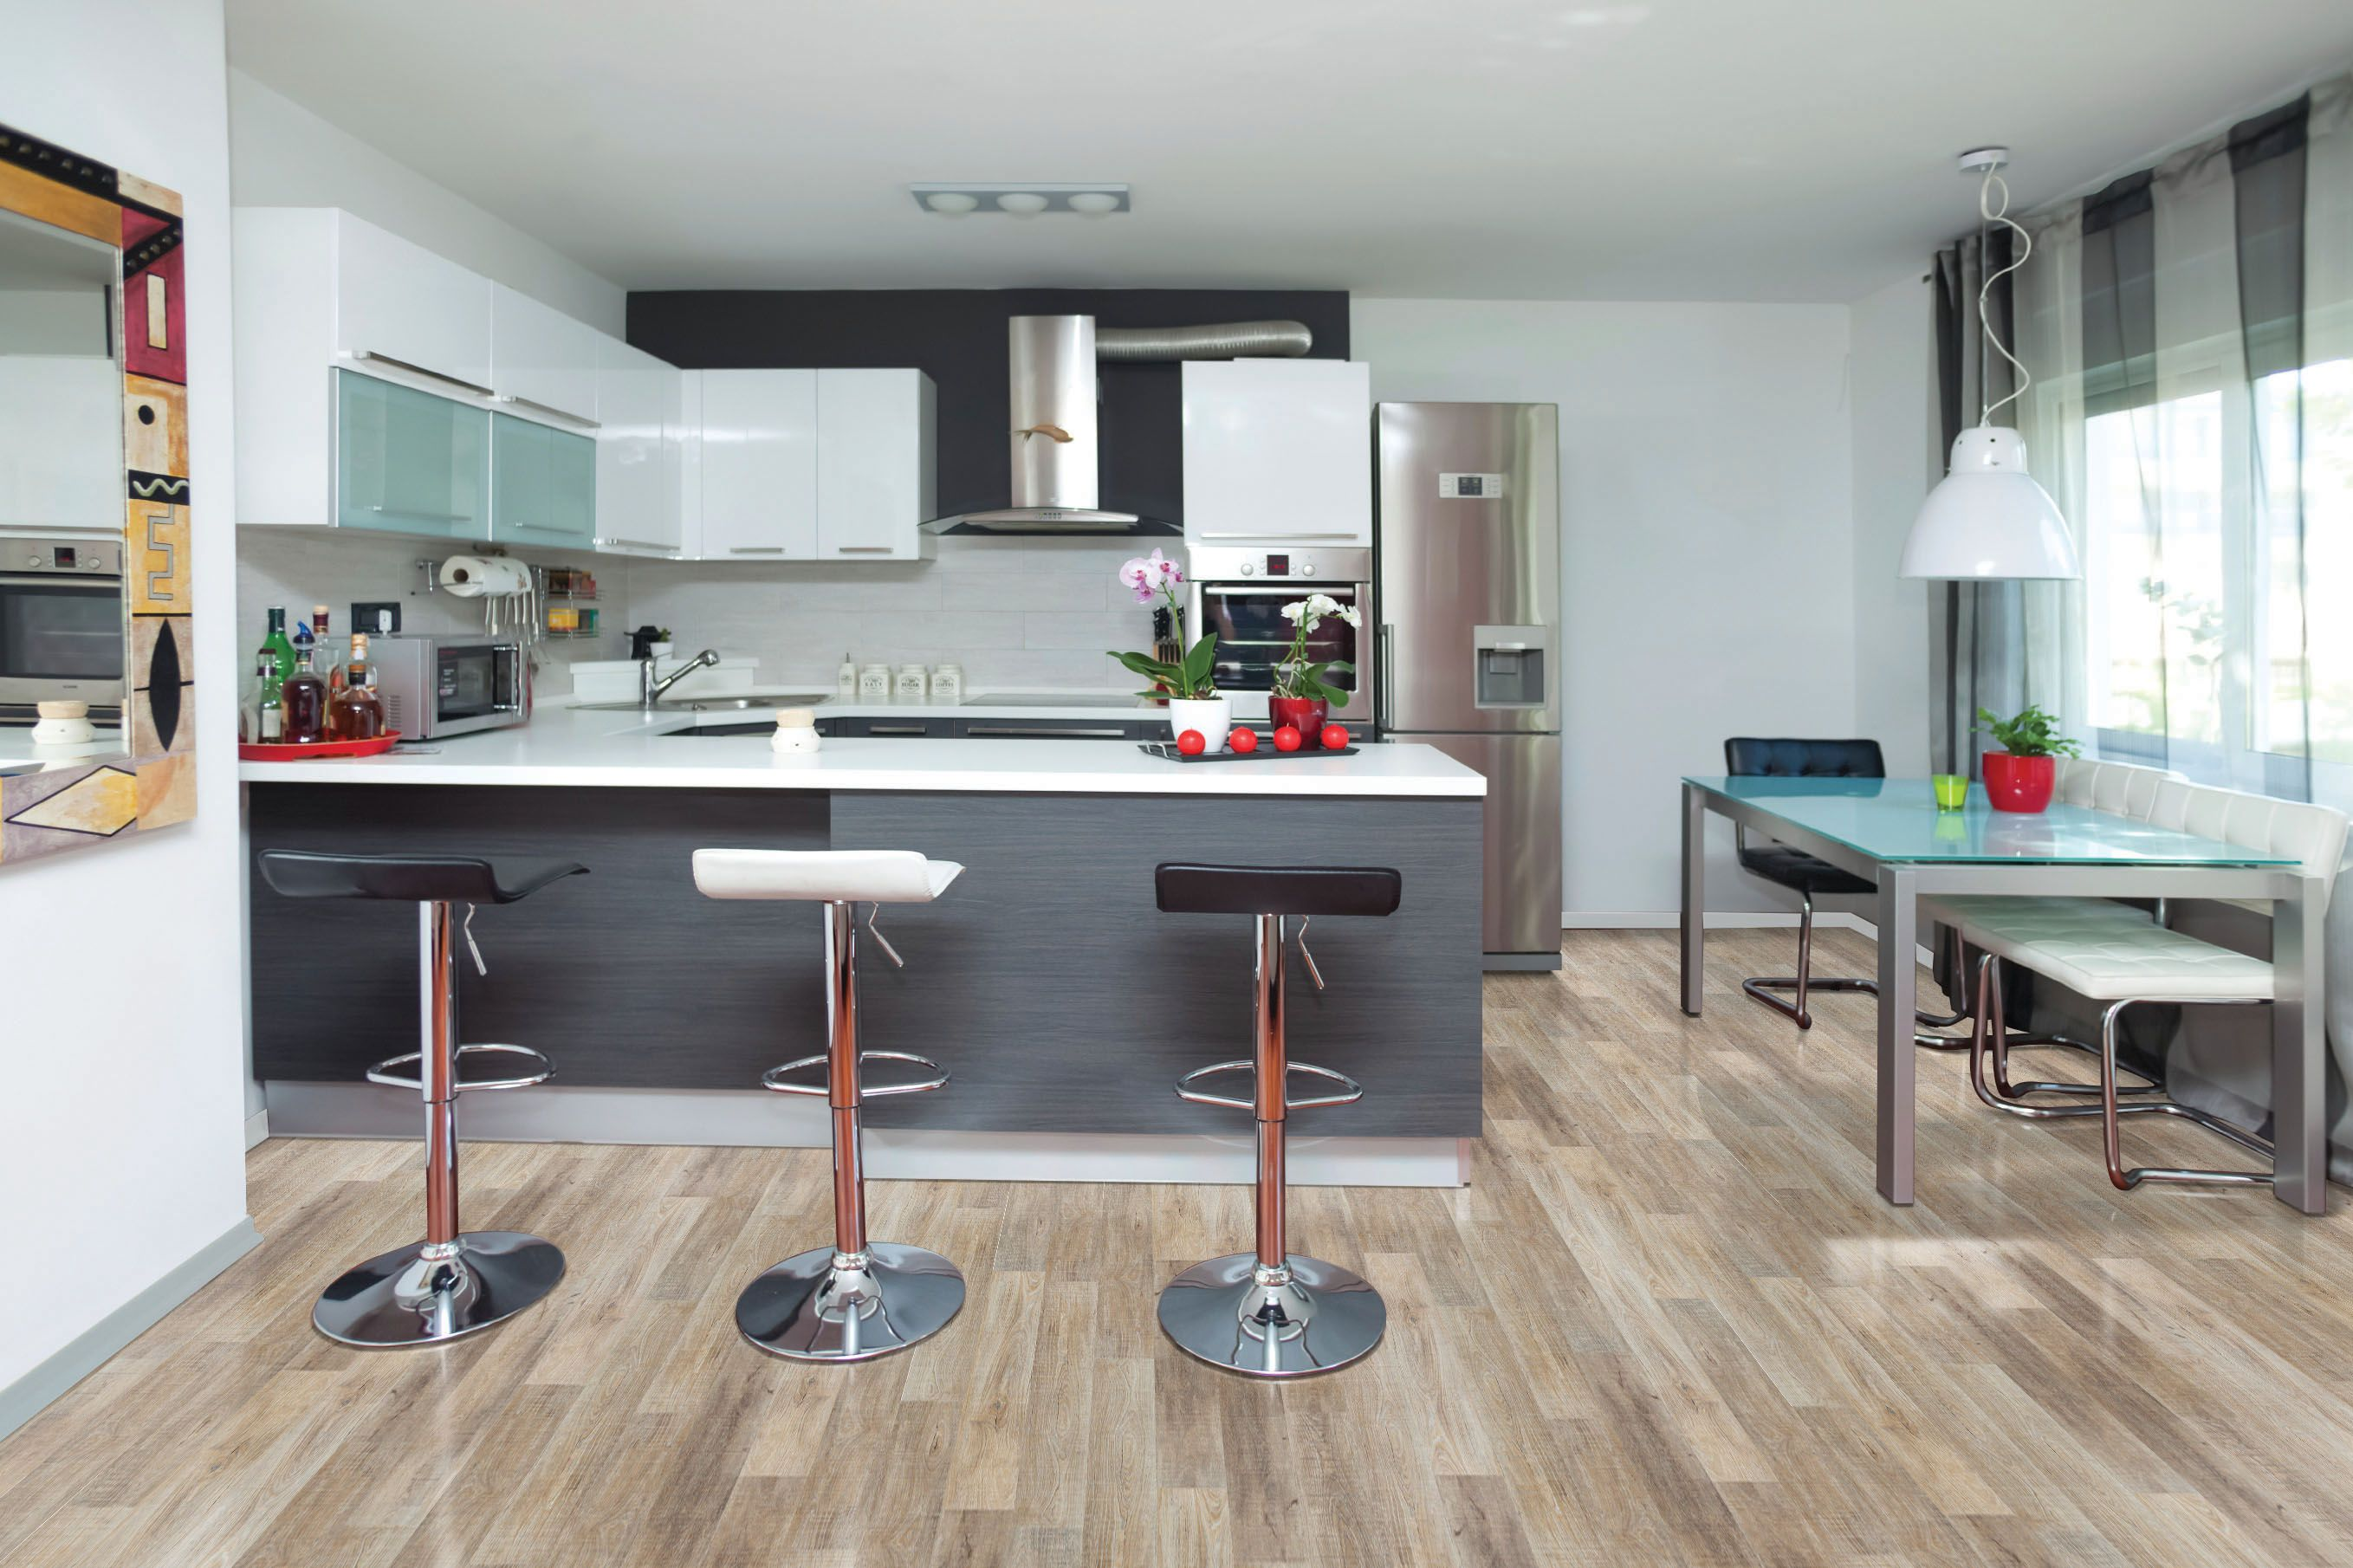 Is Cork Flooring Good For Kitchen Autumn Leaf Oak From Our New Harris Luxury Vinyl Cork Flooring